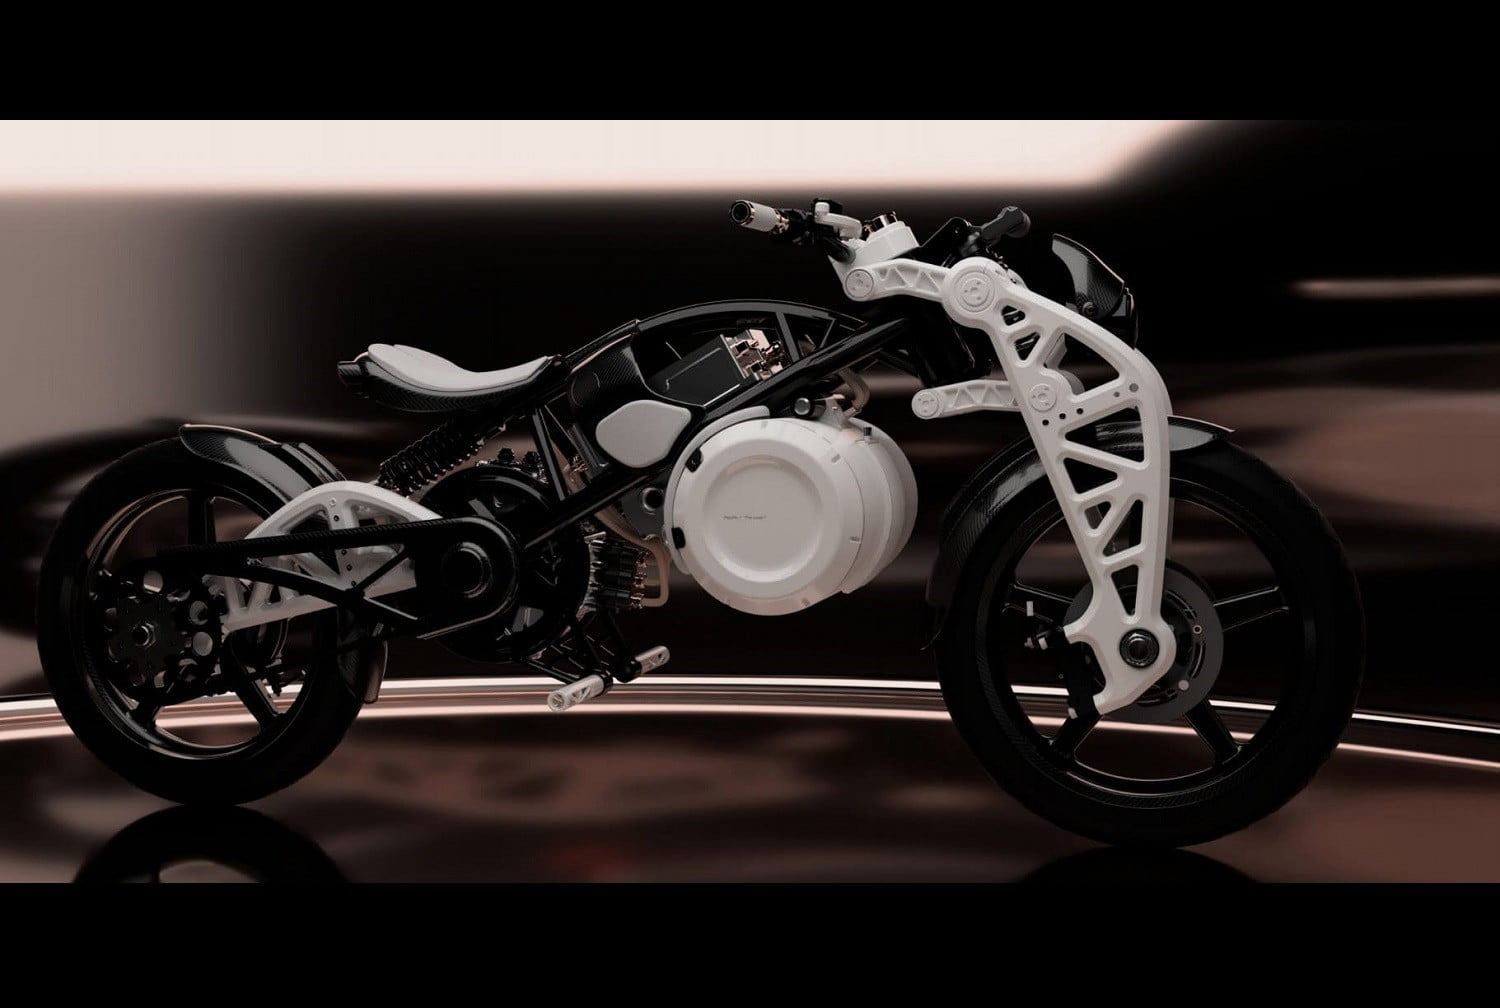 curtiss motorcycles plans psyche electric bike with 160 mile range motorcycle 6